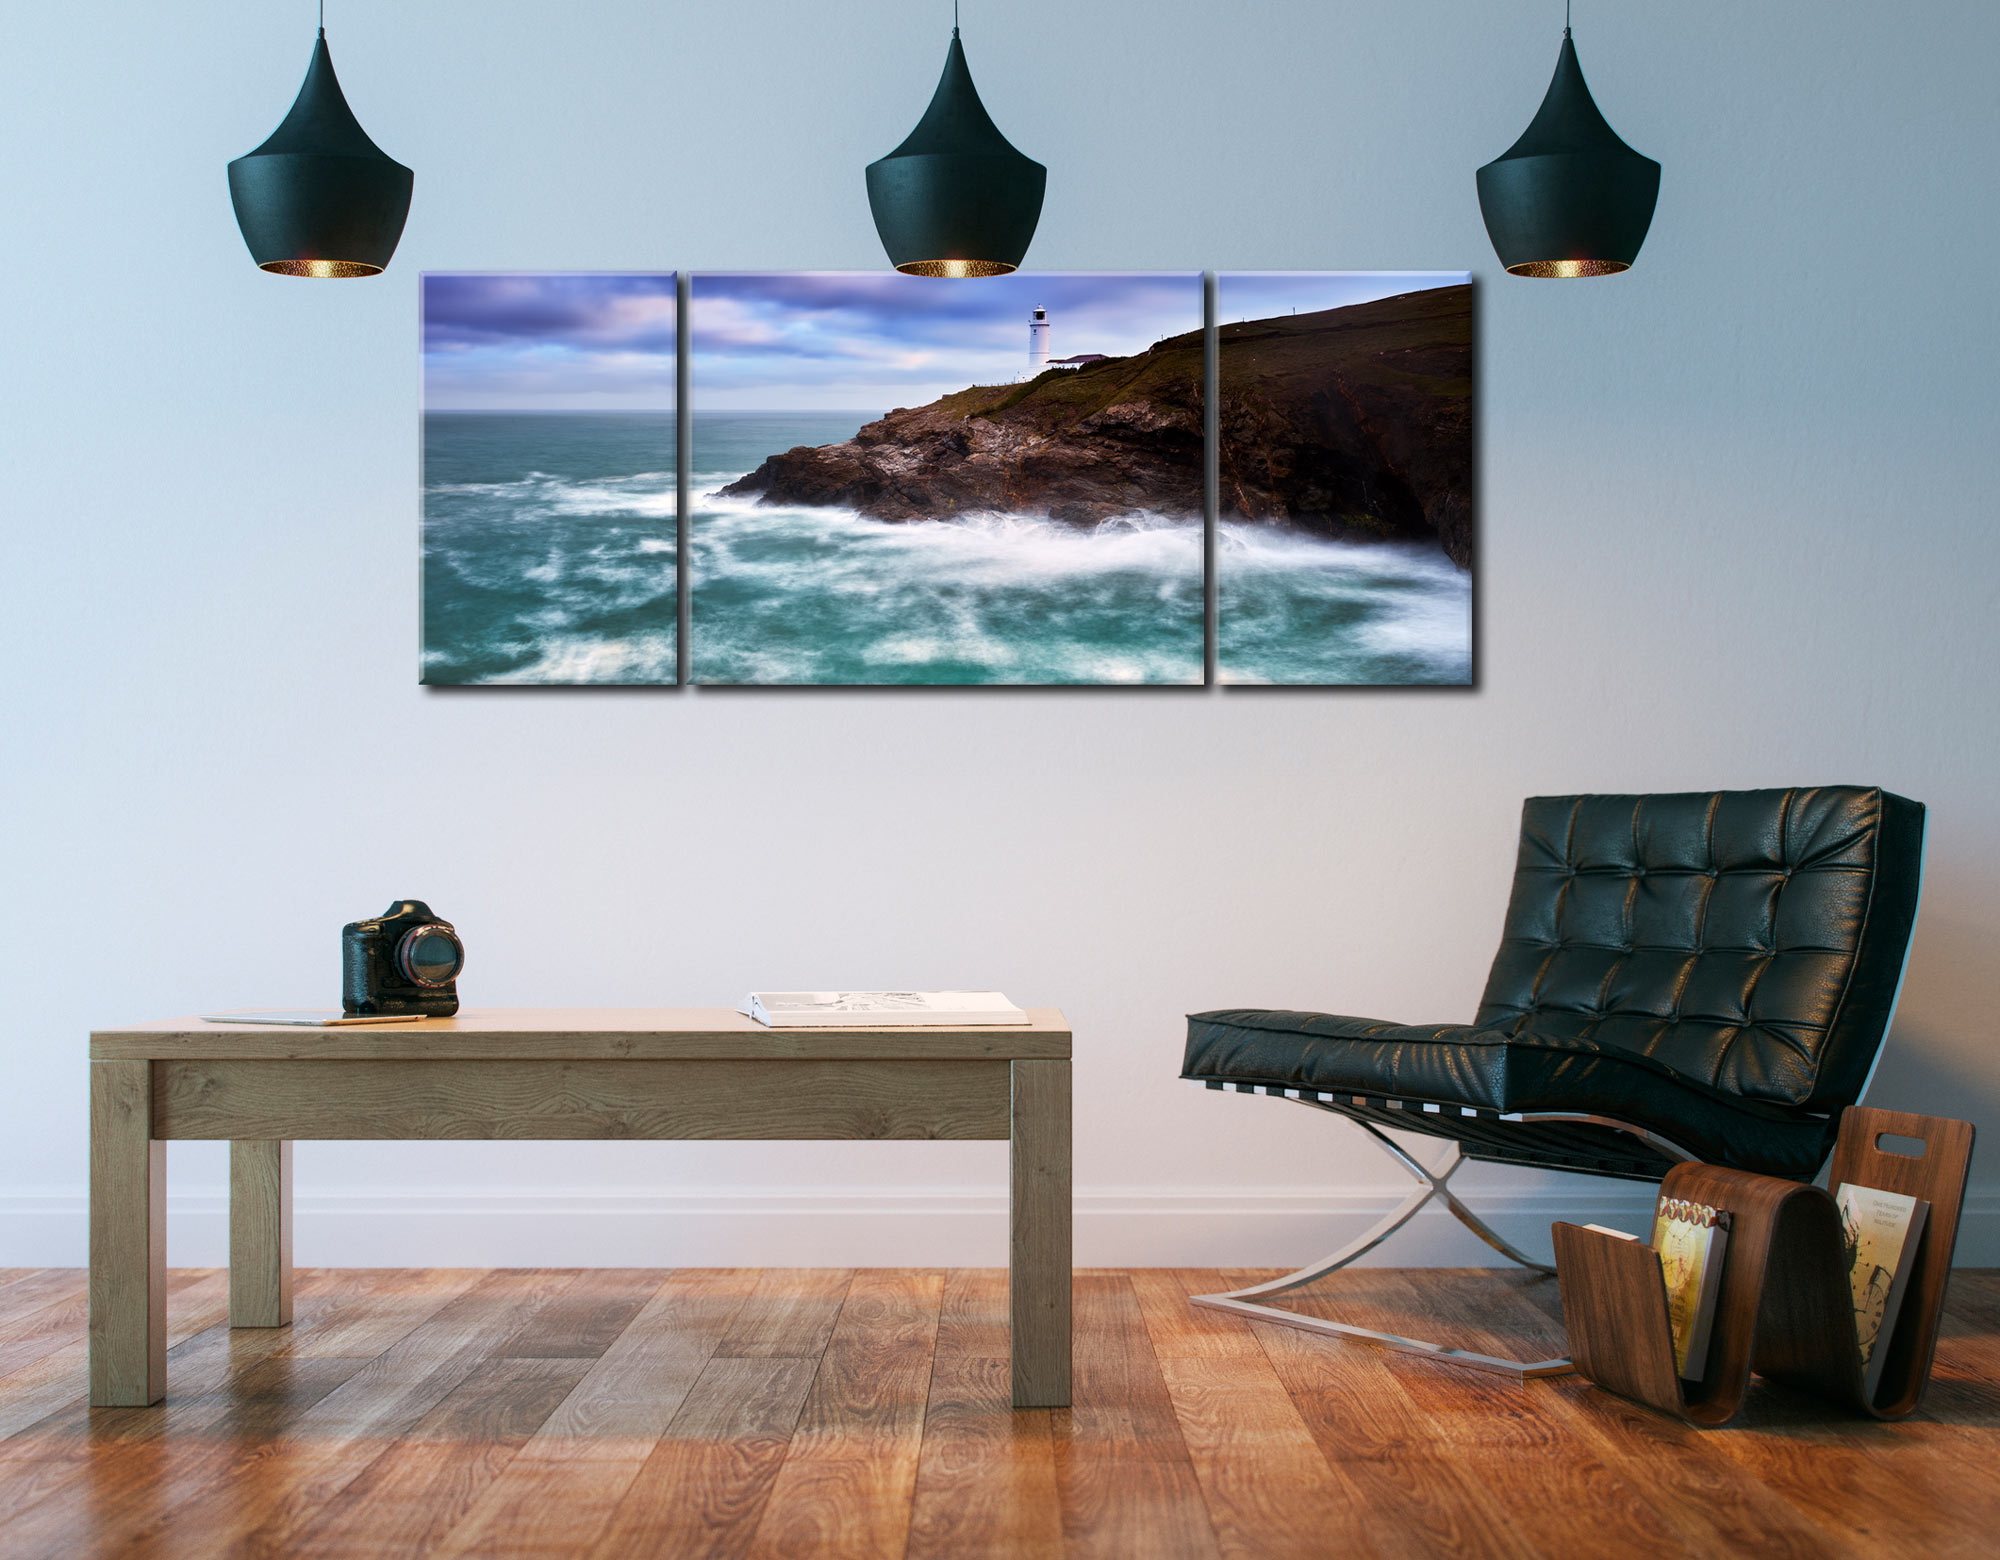 Stinking Cove and Trevose Head Lighthouse - 3 Panel Wide Mid Canvas on Wall